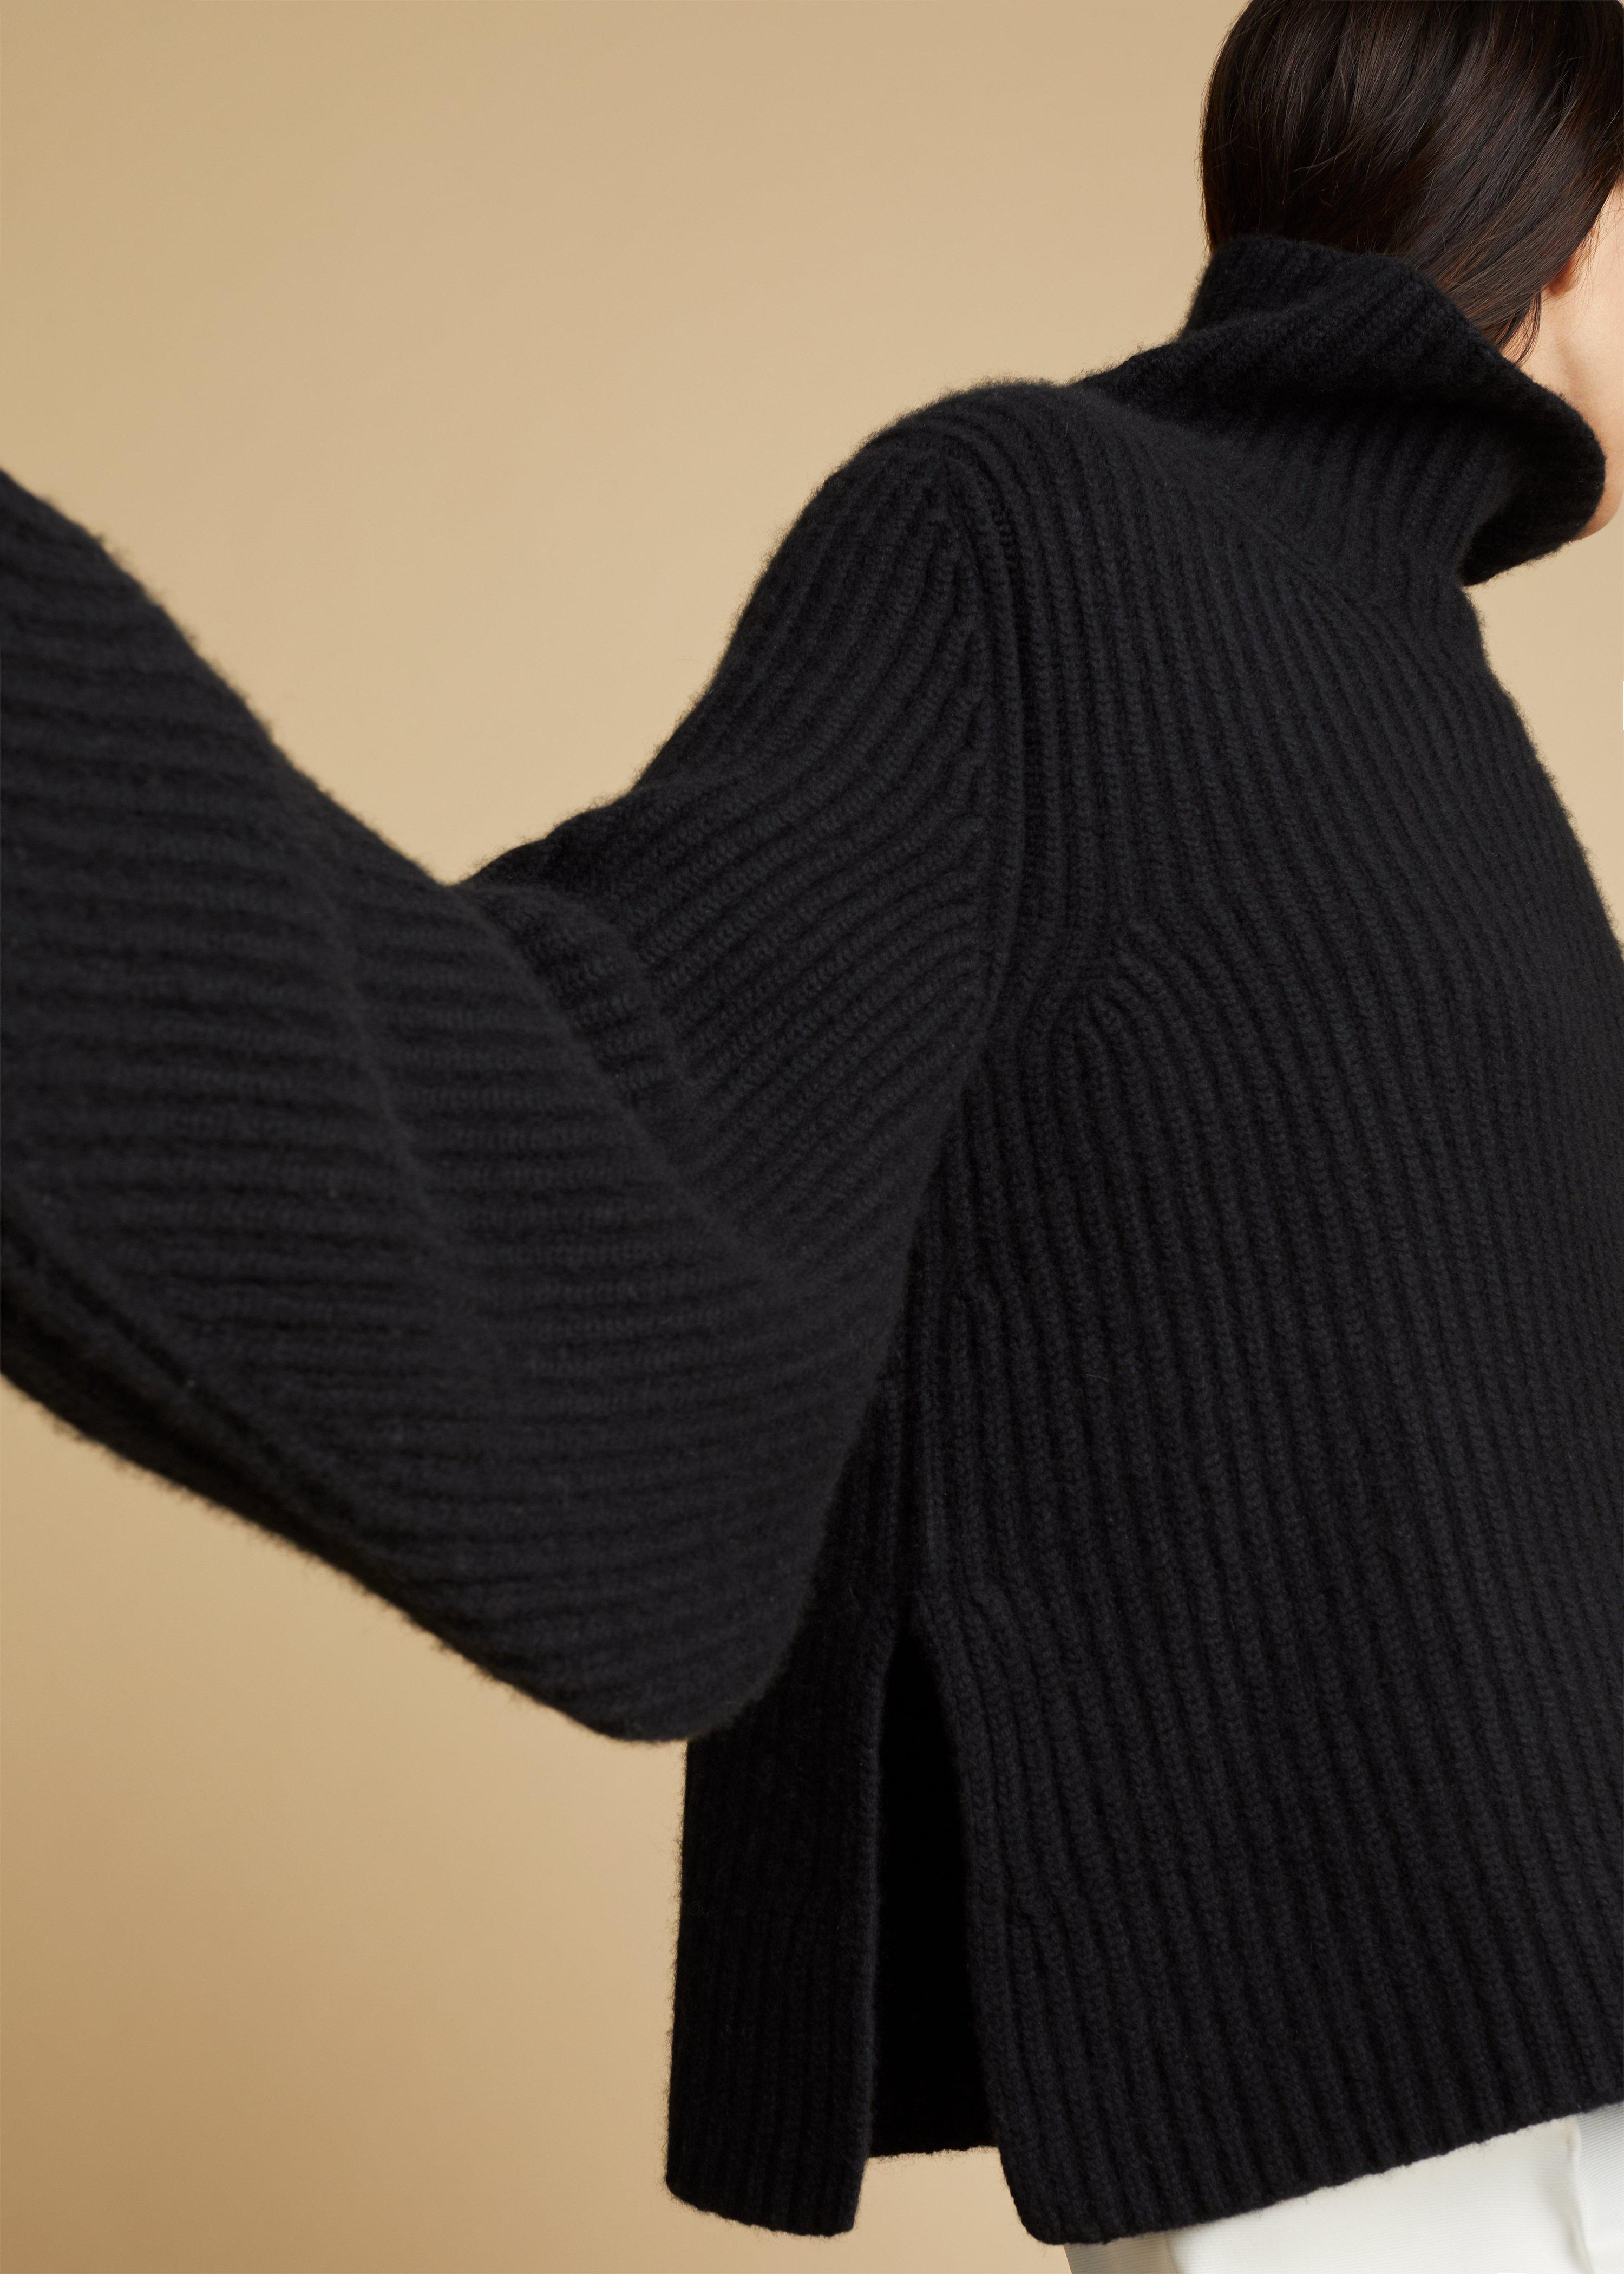 The Molly Sweater in Black 6